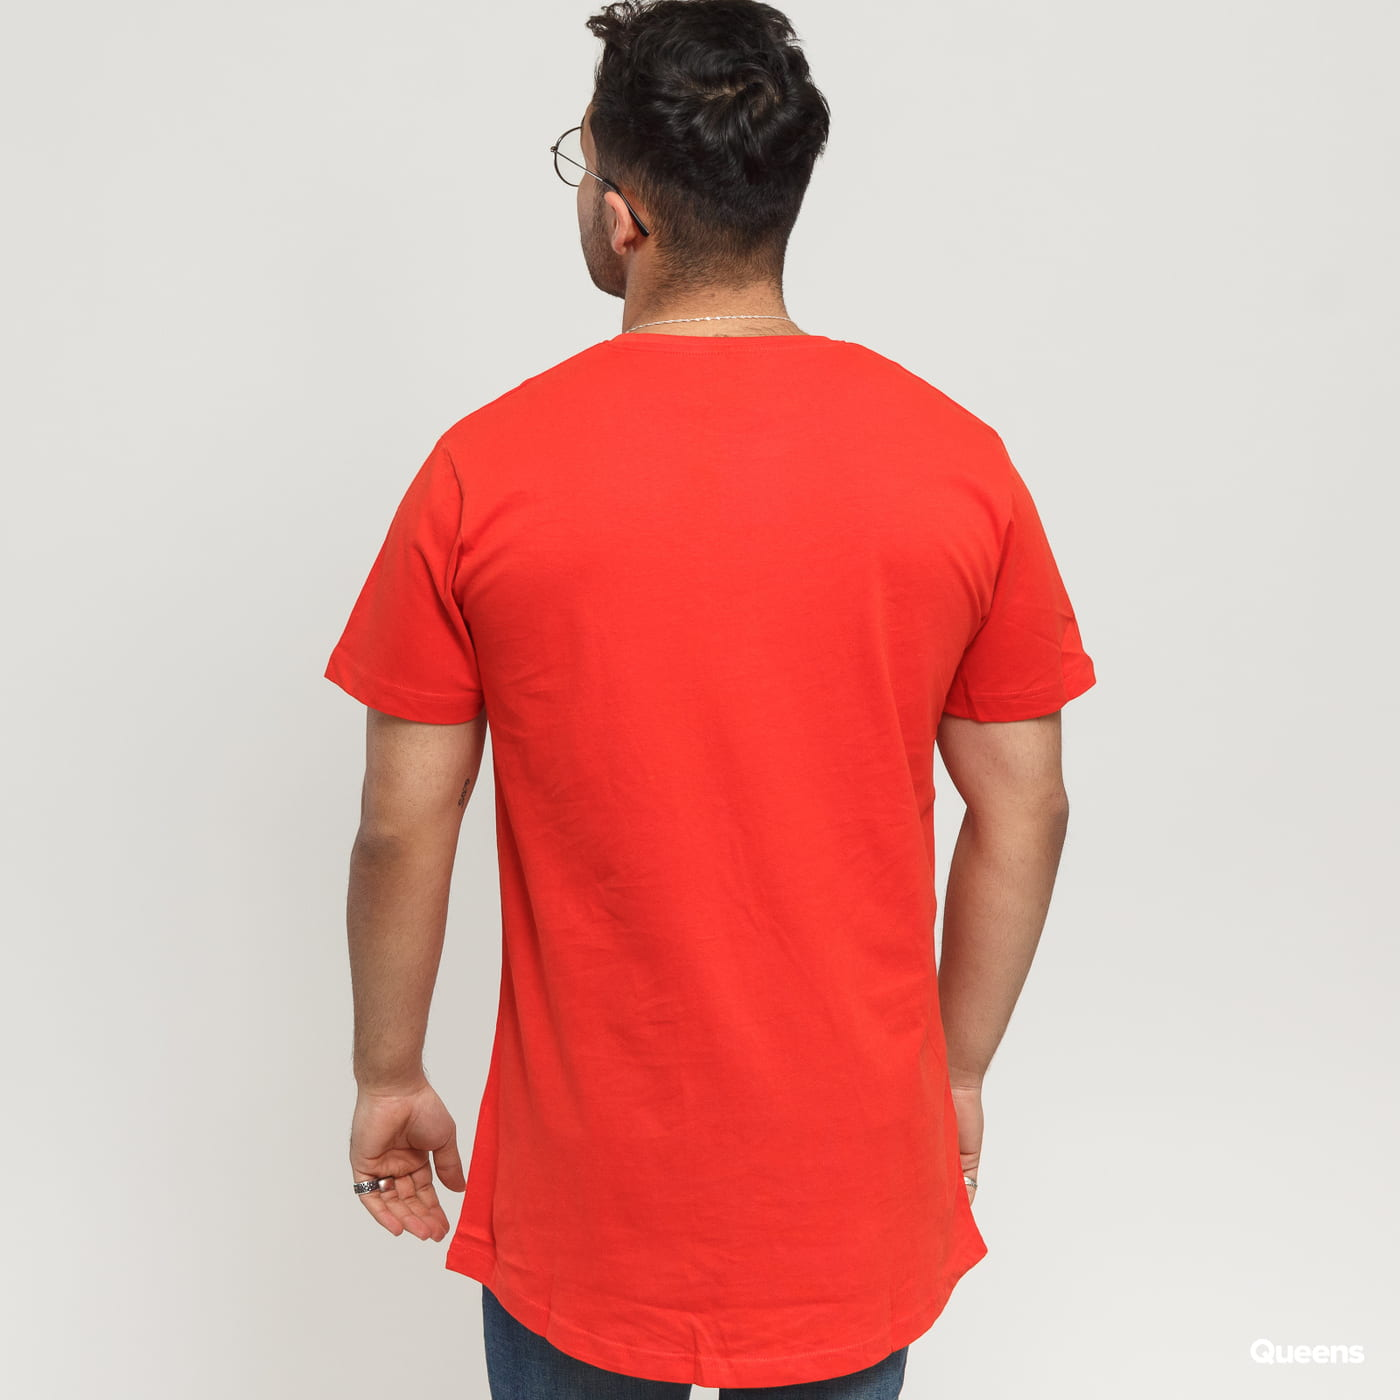 Urban Classics Shaped Long Tee dunkelorange